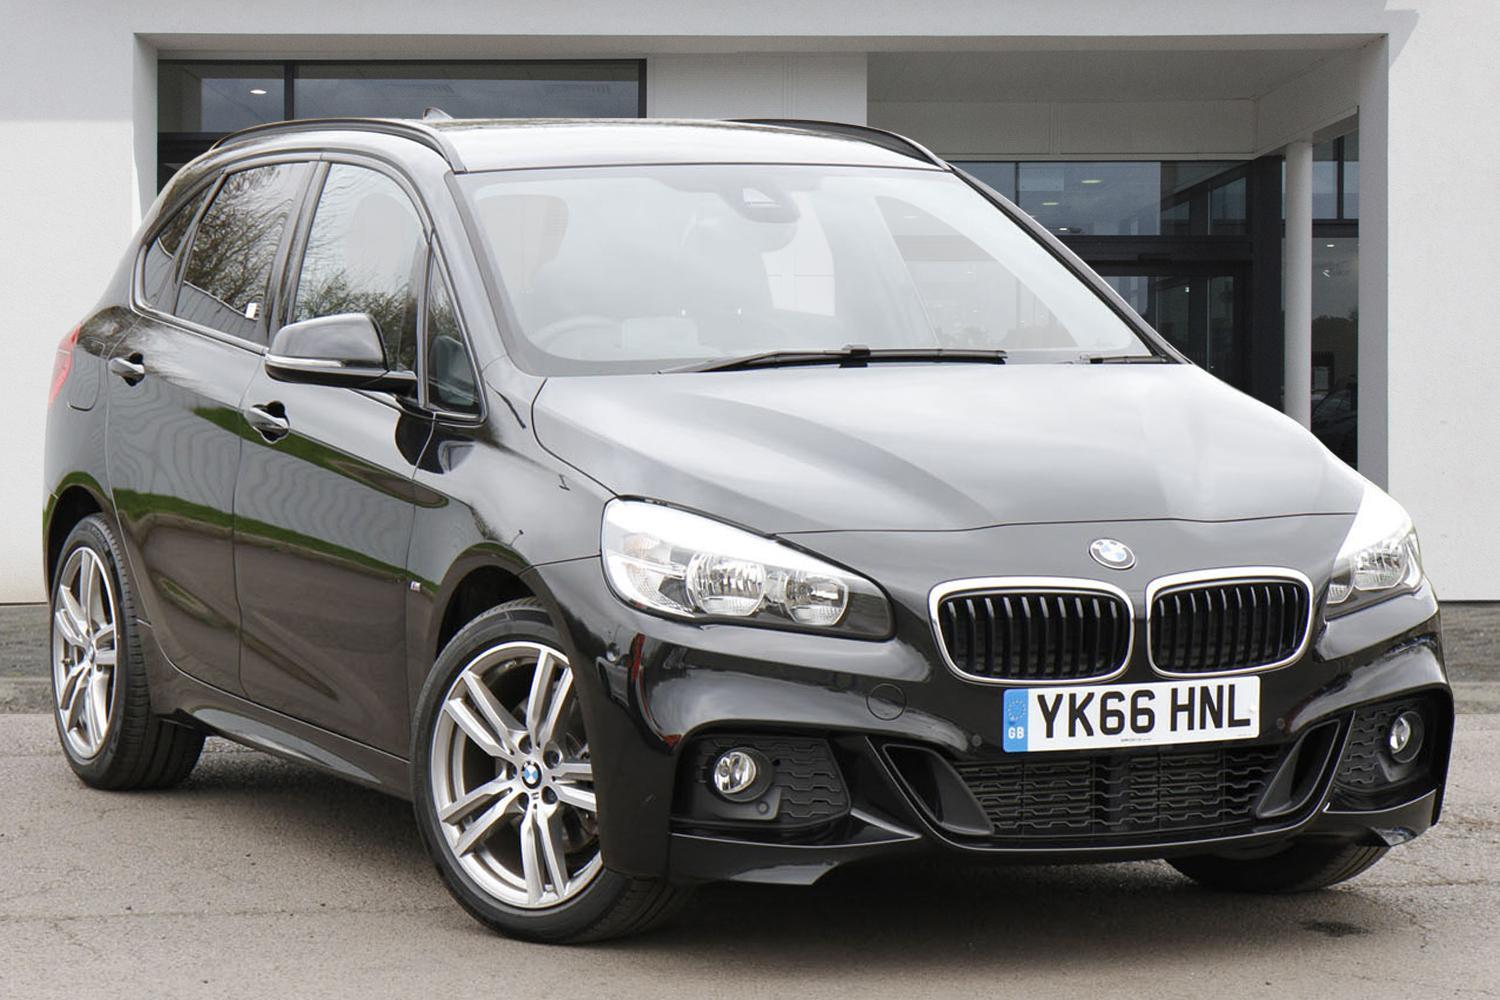 BMW 2 Series Active Tourer 5-Door YK66HNL - Image 1